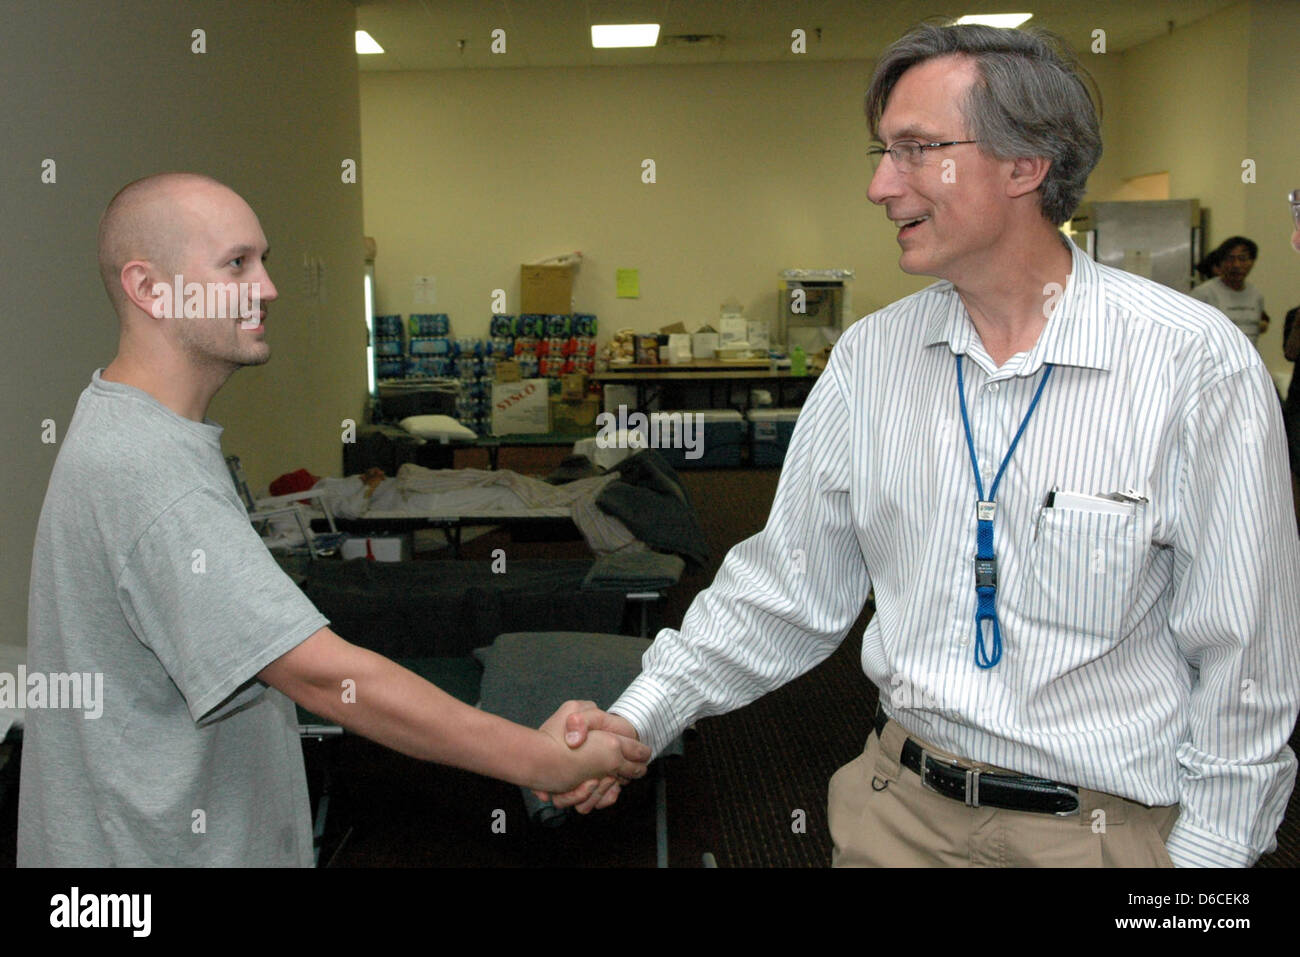 Lab director greets employee who was evacuated - Stock Image